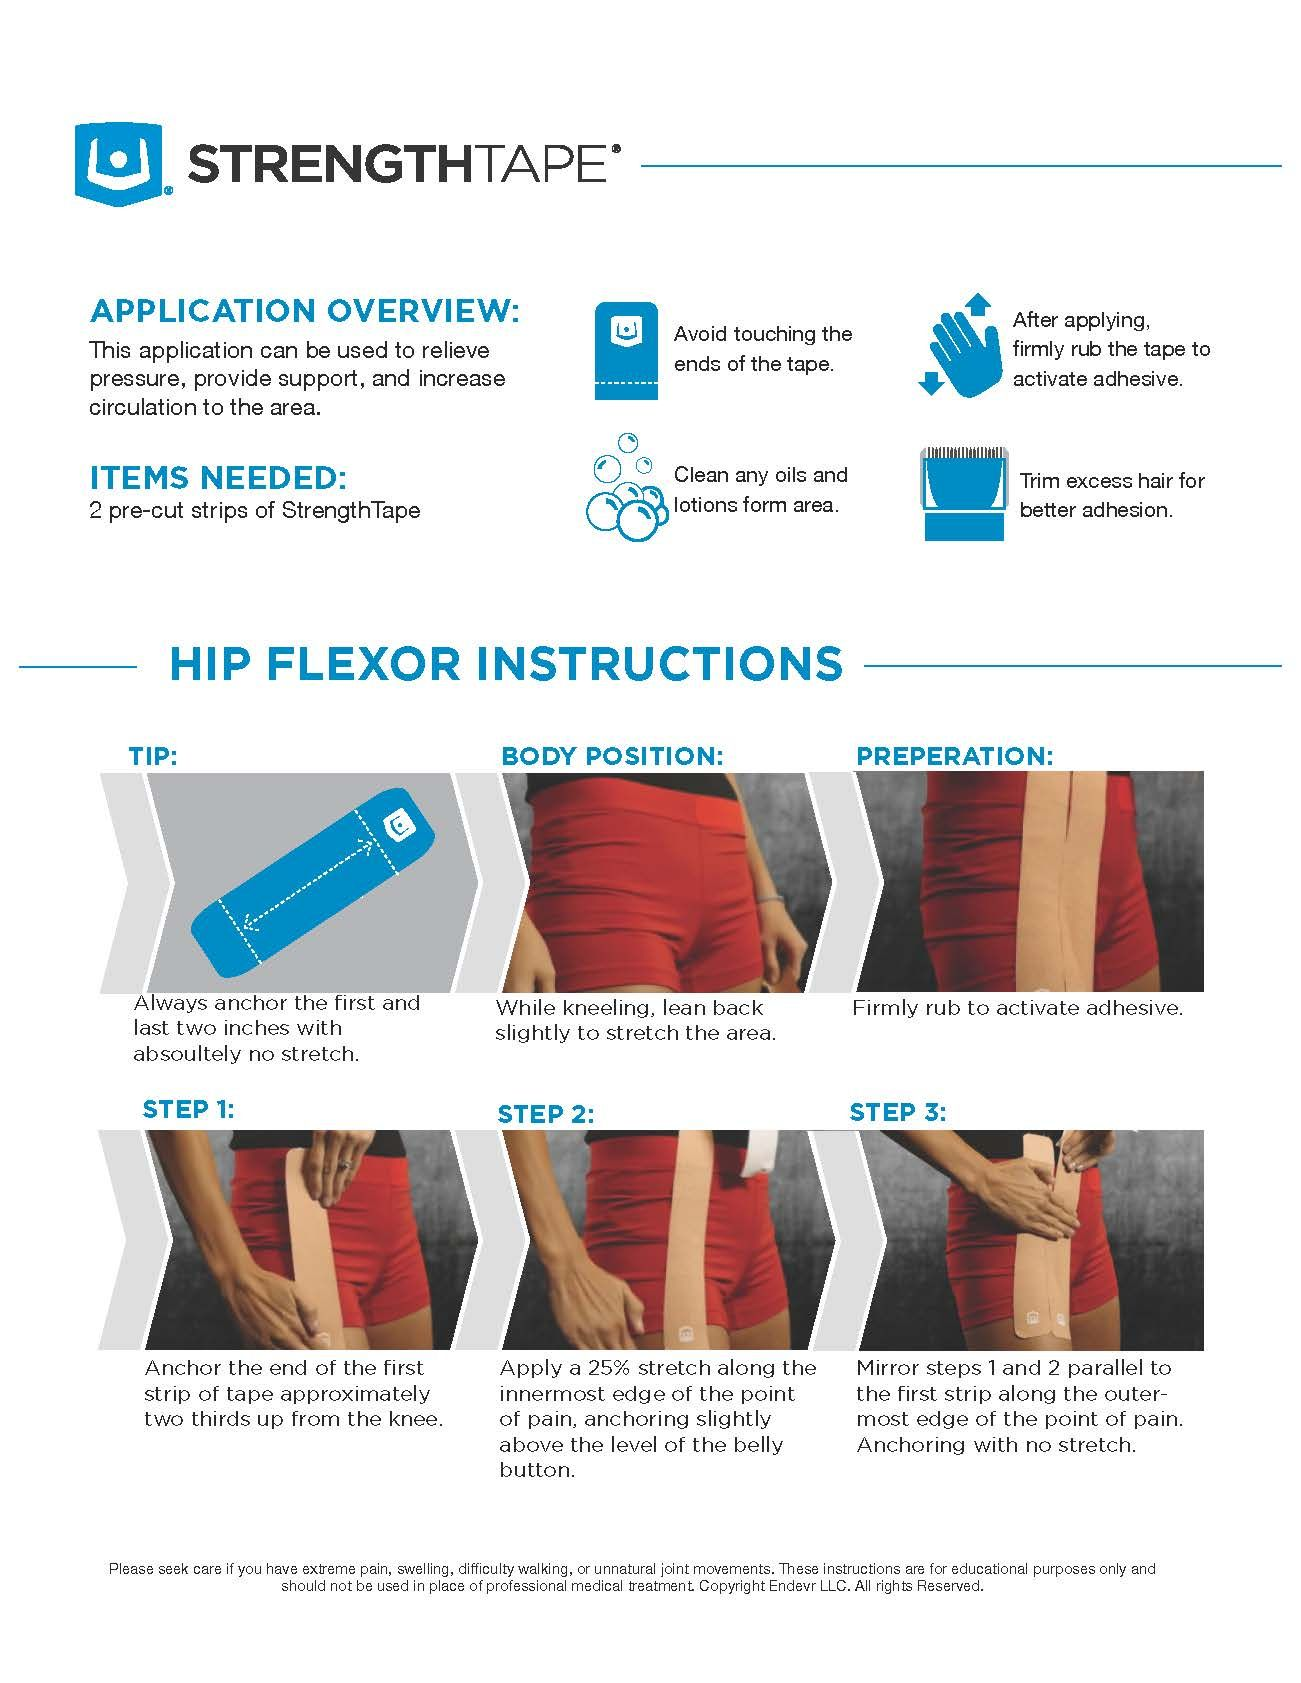 Knee pain diagnosis chart - Hip Flexor Instructions Hipflexorinstructions Kinesiologytapeapplication